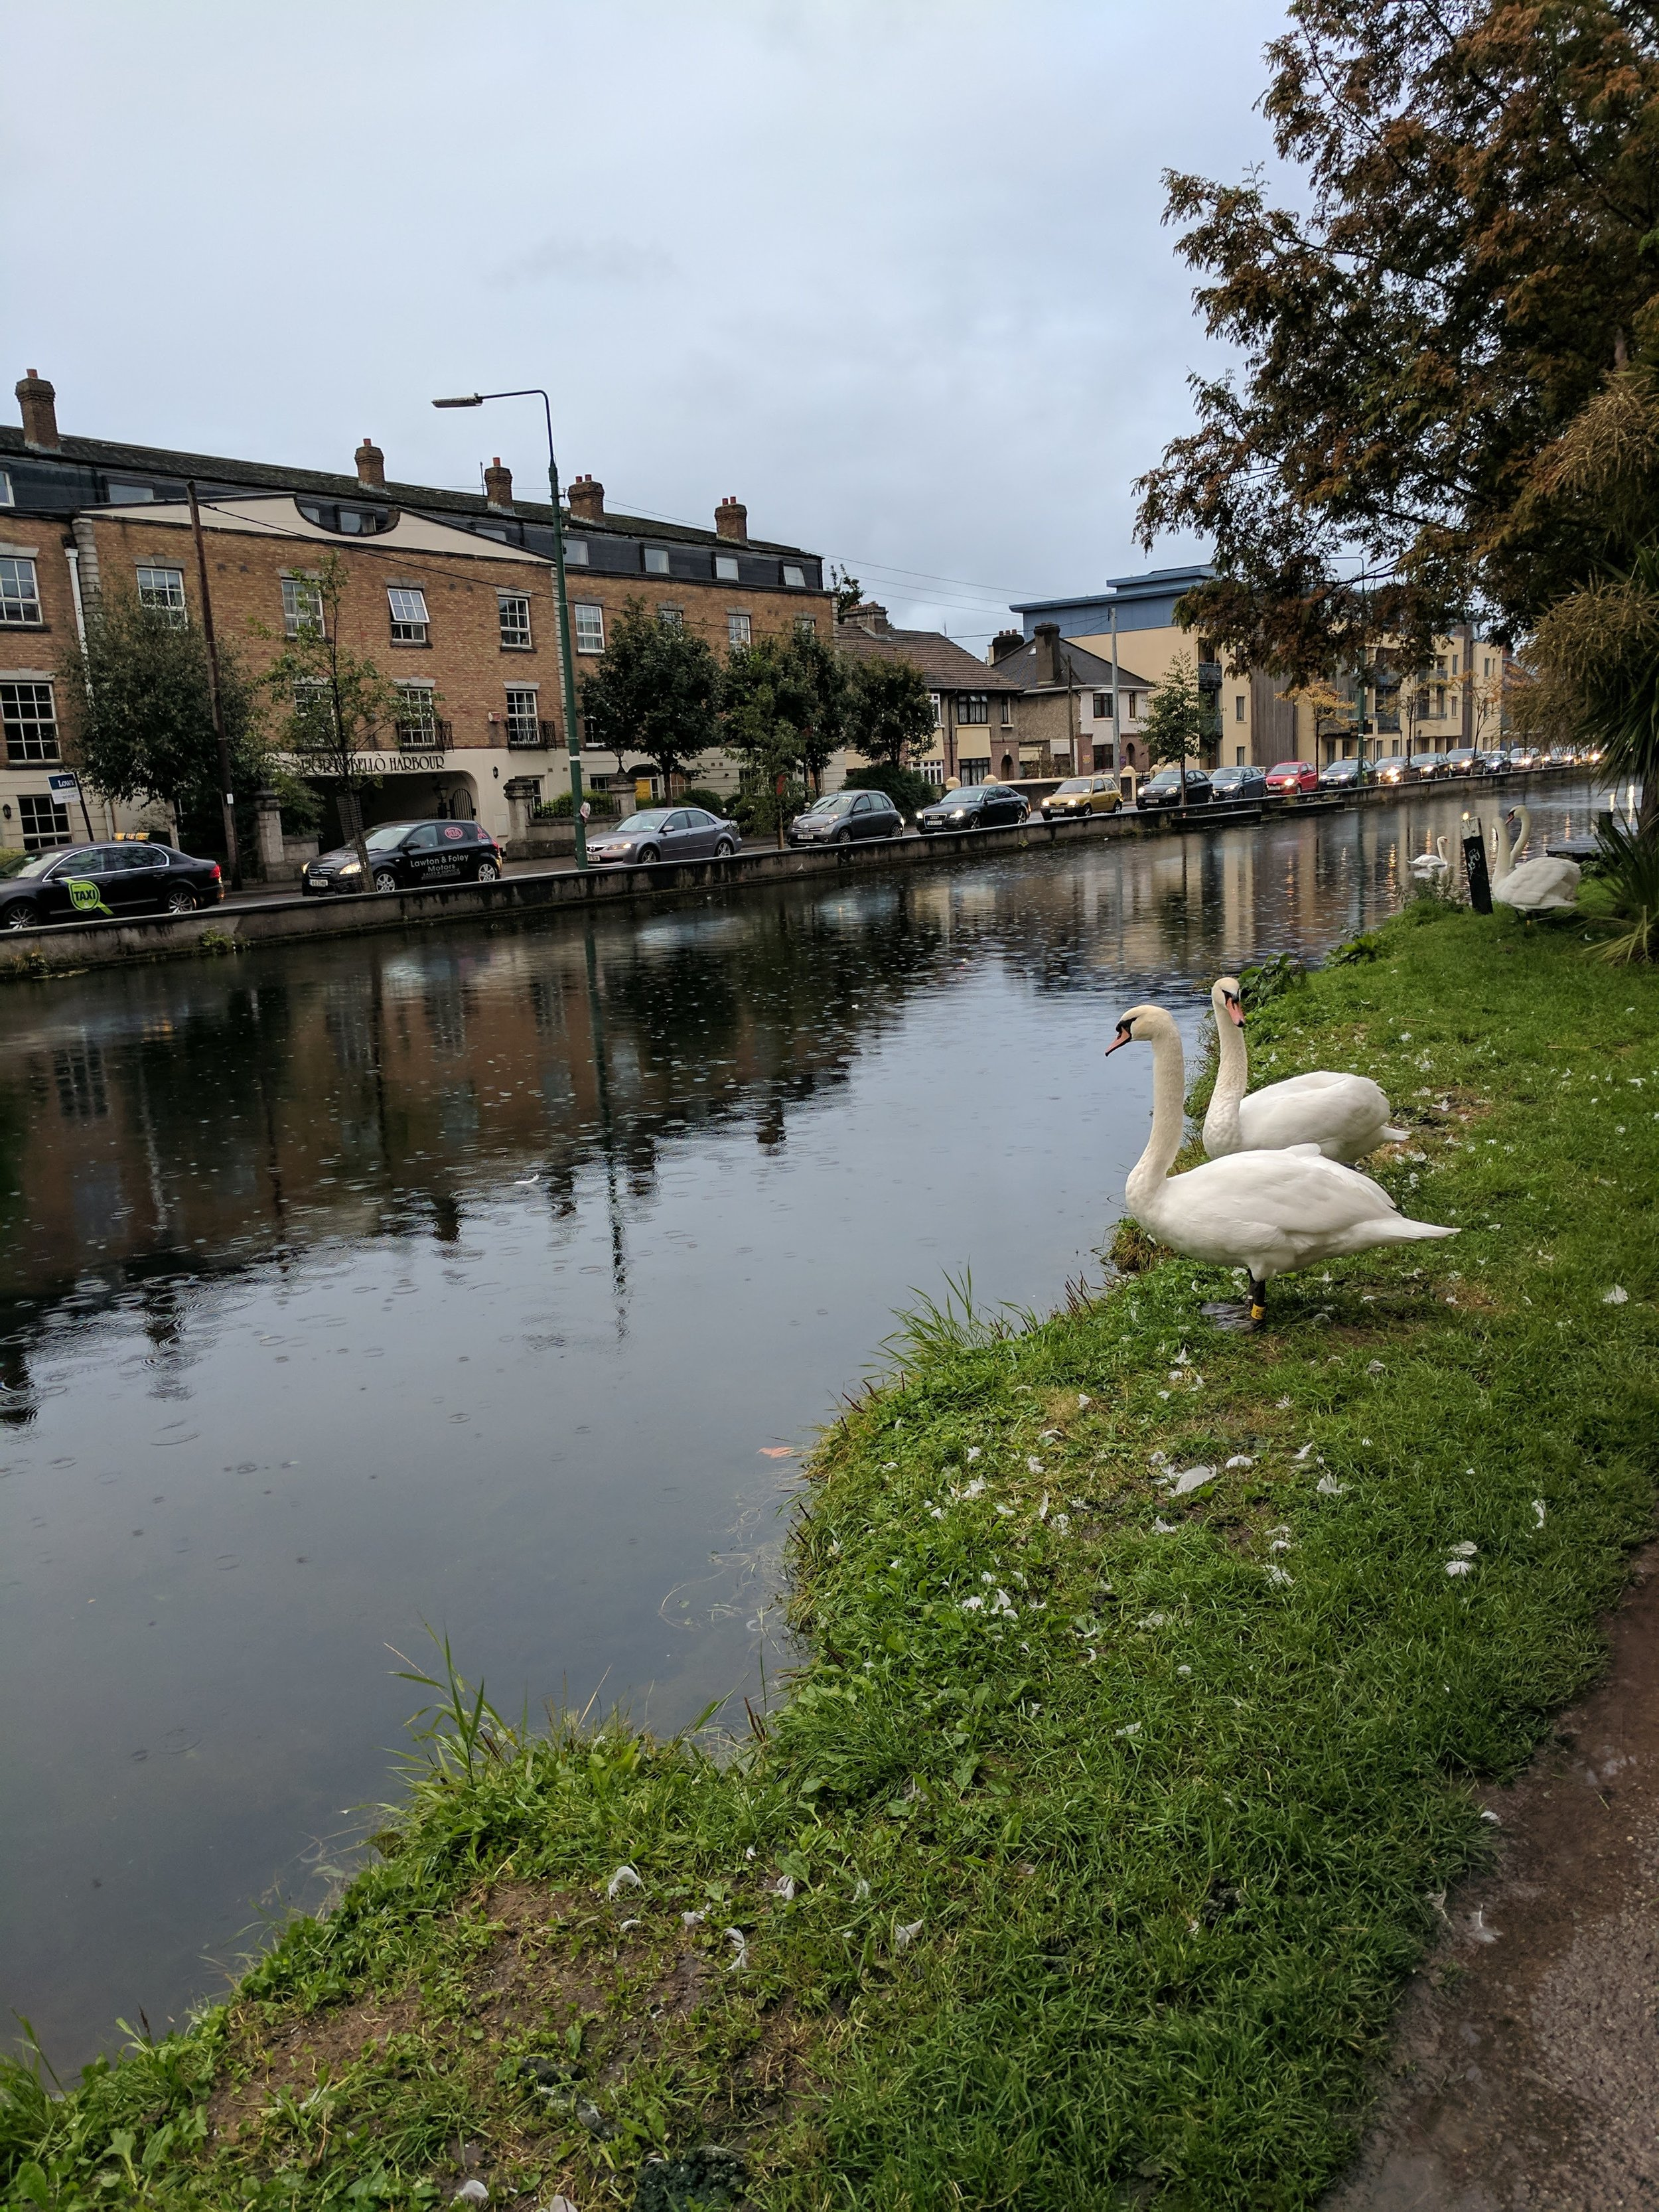 The swans were annoying me...